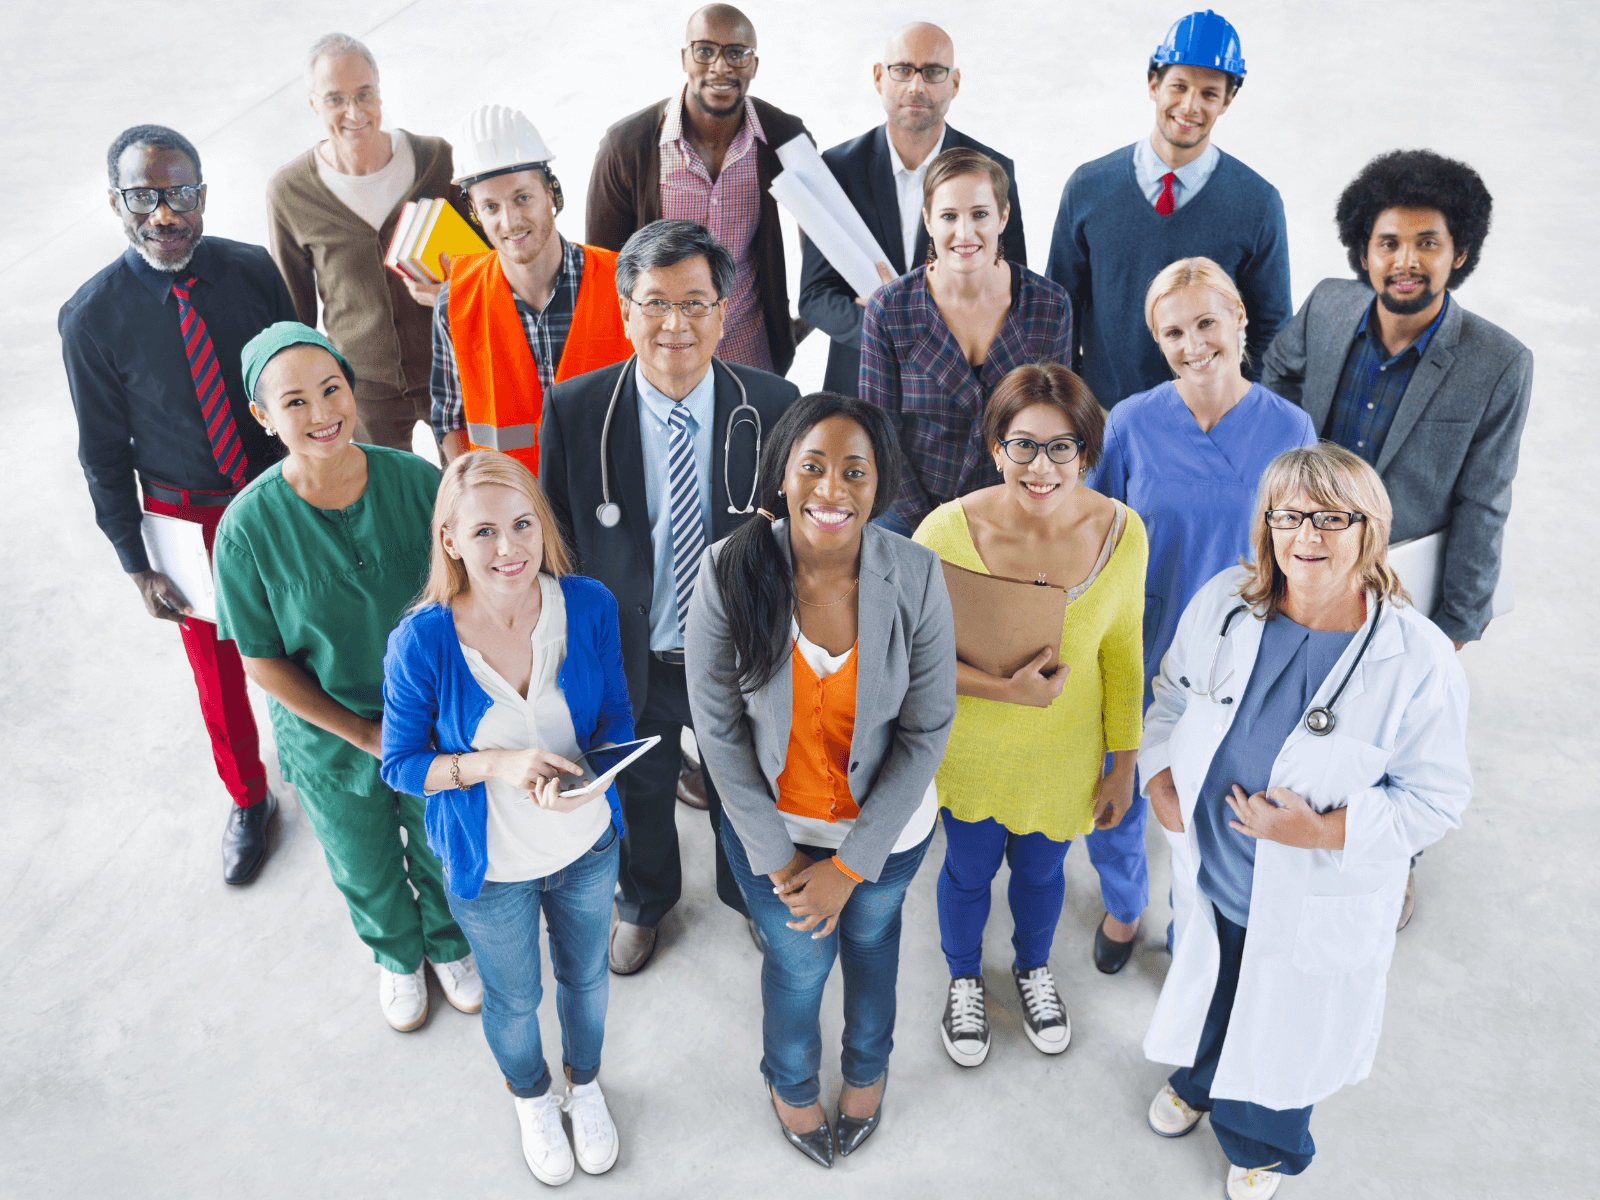 A diverse work force